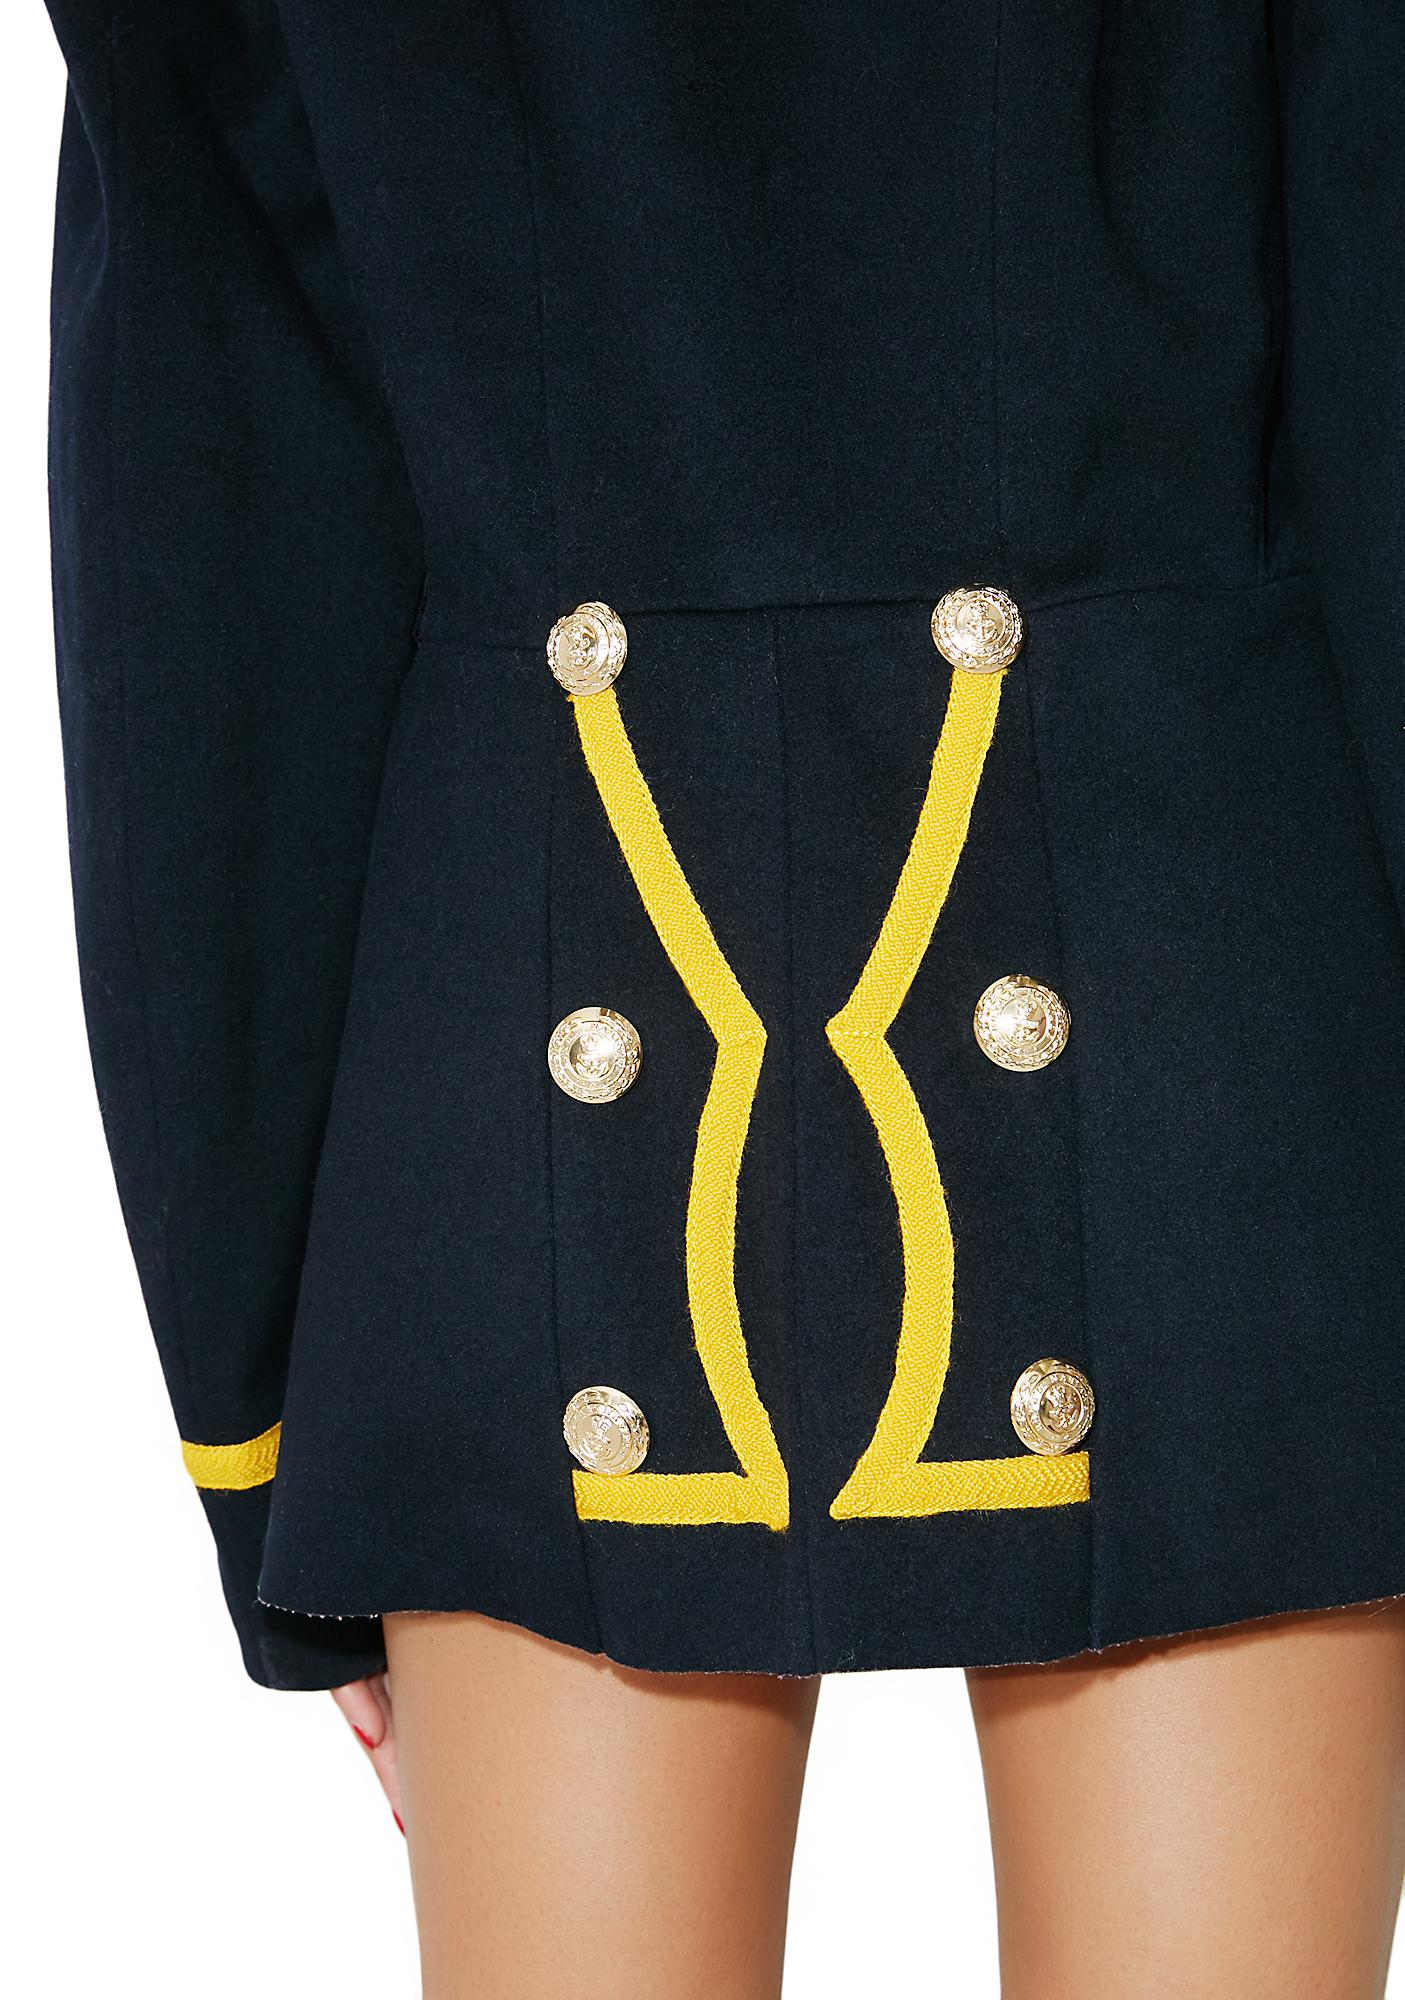 Vintage Collared Military Jacket